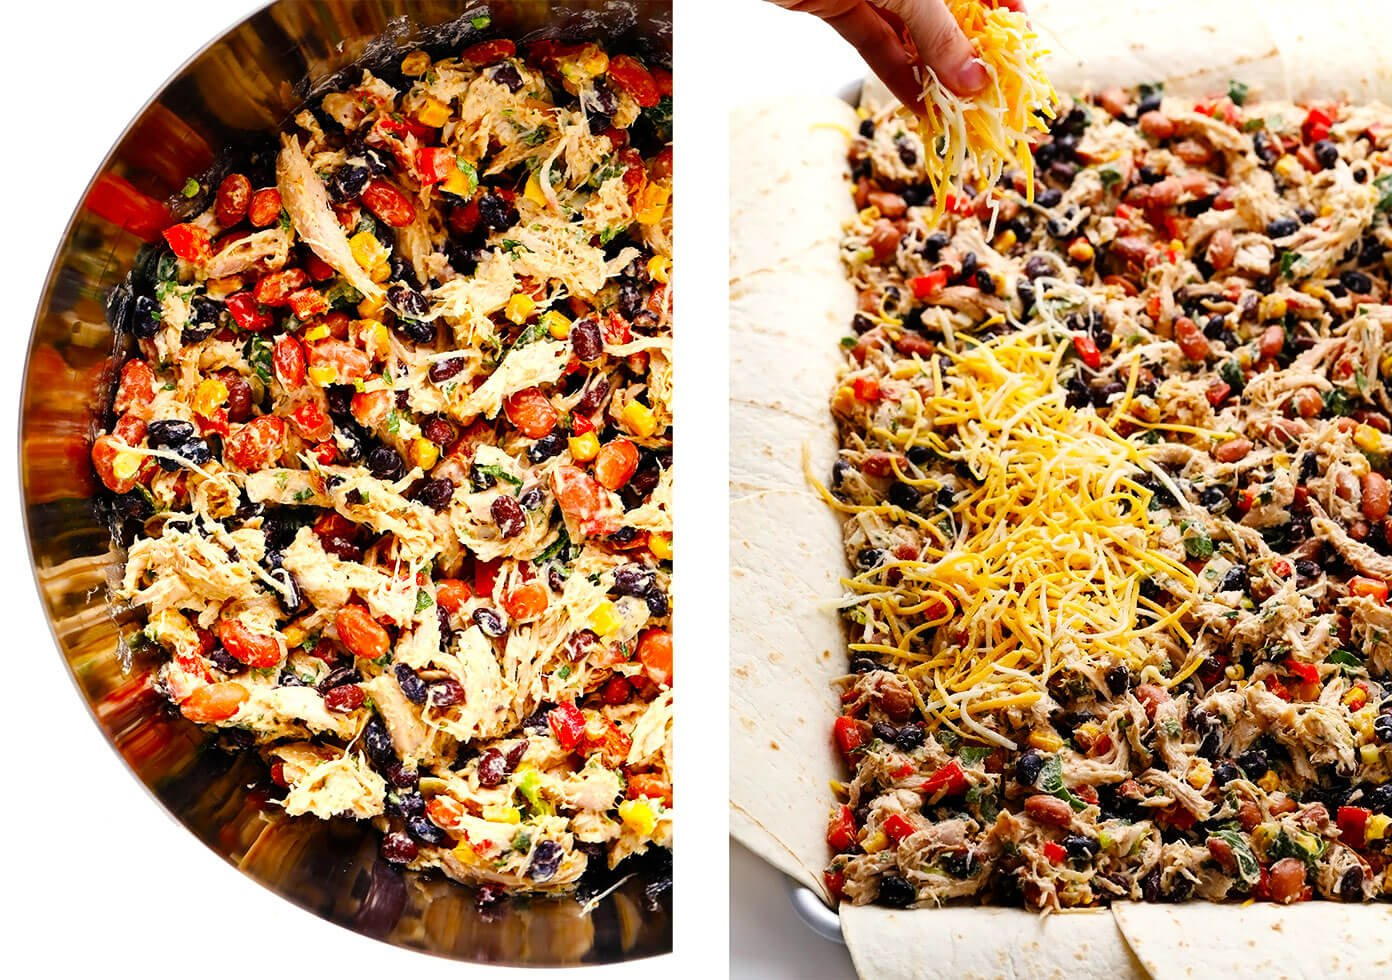 How To Make Sheet Pan Quesadillas -- Layering The Tortillas With Chicken Filling and Cheese